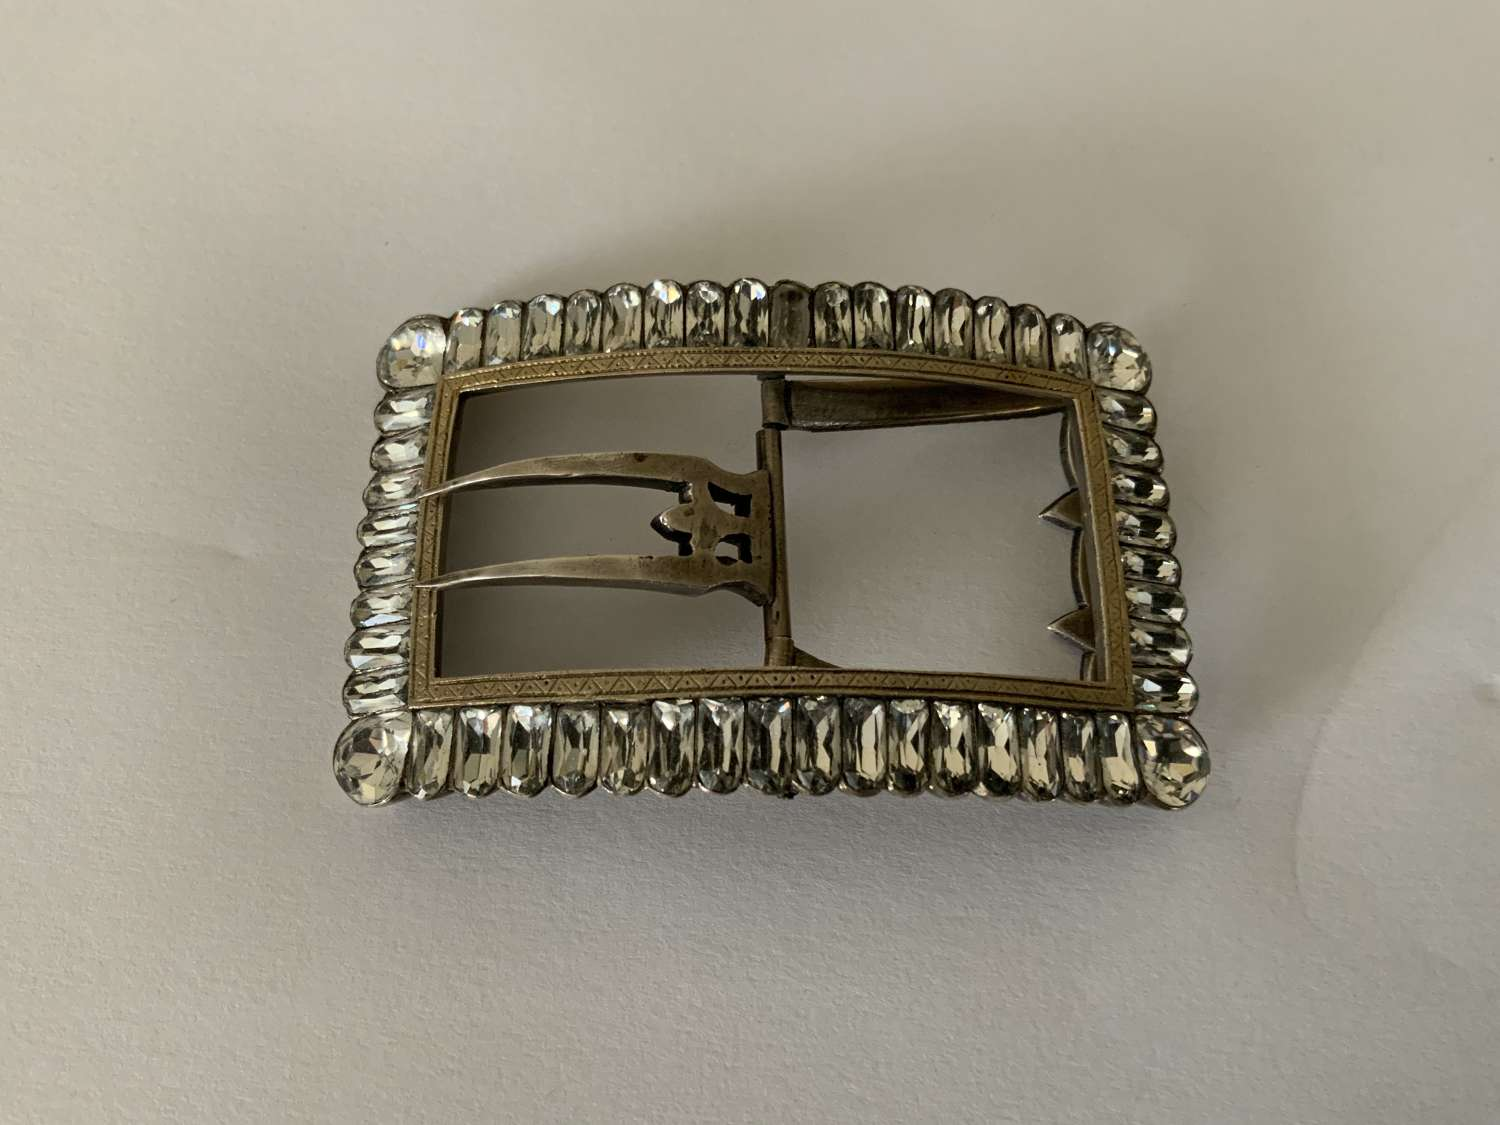 French paste buckle